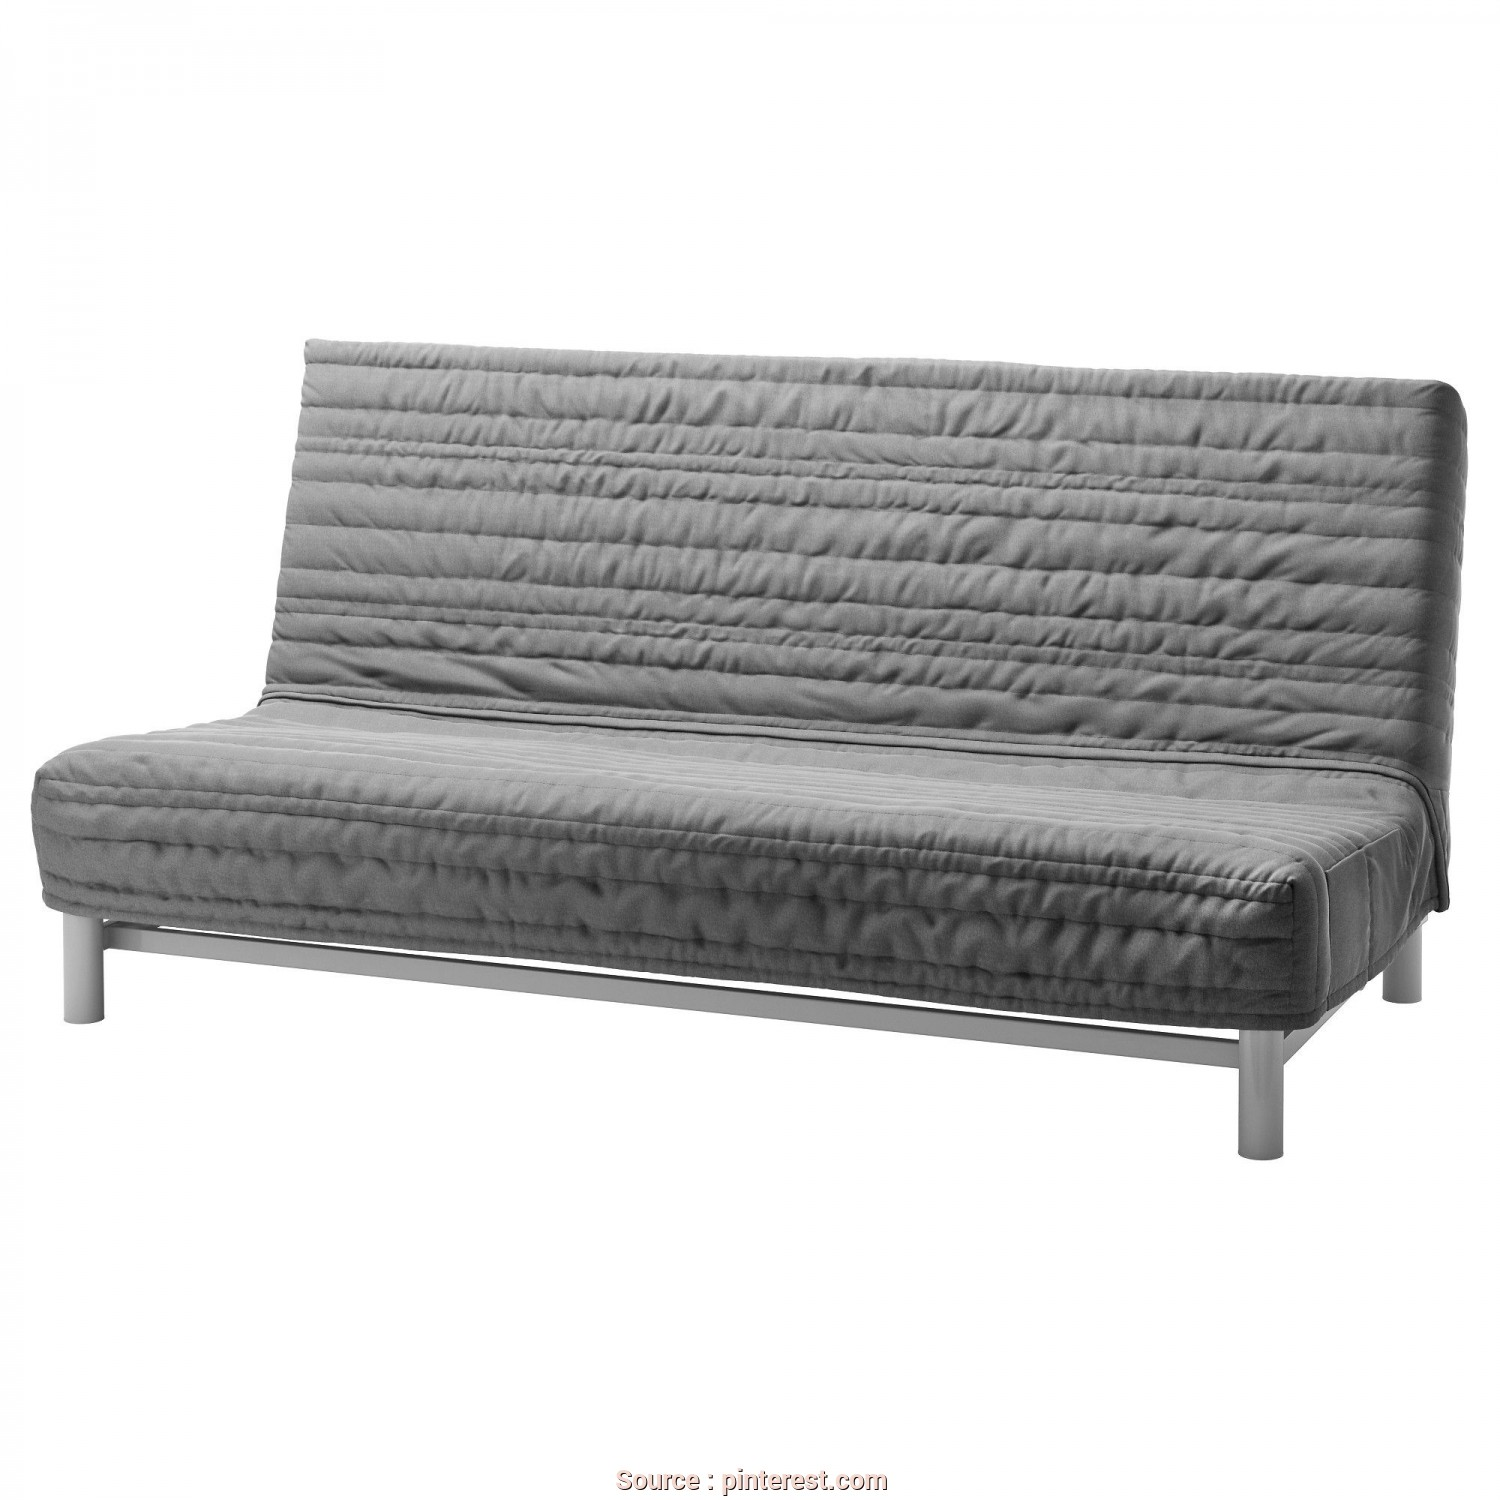 Beddinge Lovas Ikea, Elegante IKEA, BEDDINGE LÖVÅS, Sofa Bed, Knisa Light Gray, , Extra Covers Make It Easy To Give Both Your Sofa, Room A, Look.Easily Converts Into A, Big